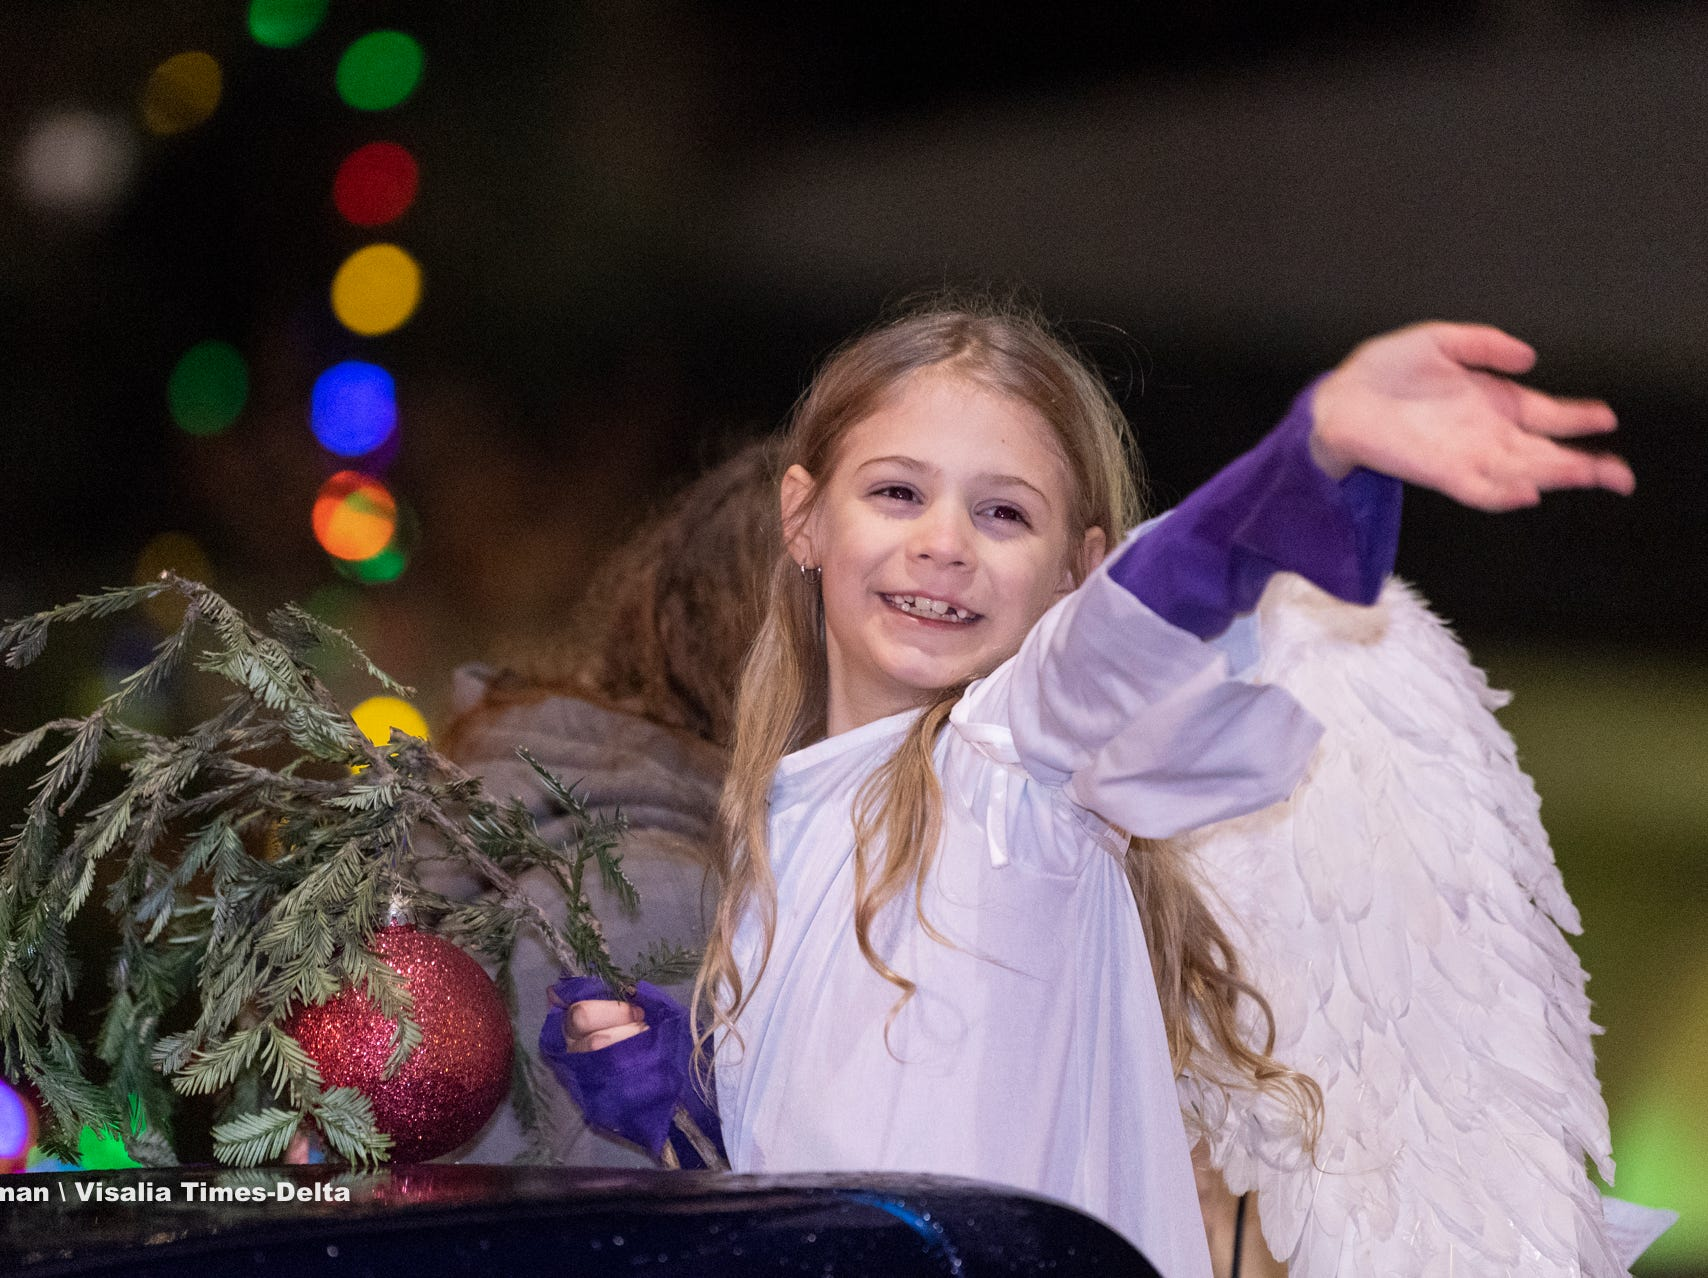 Tulare Children's Christmas Parade and Tree Lighting on Thursday, December 6, 2018.